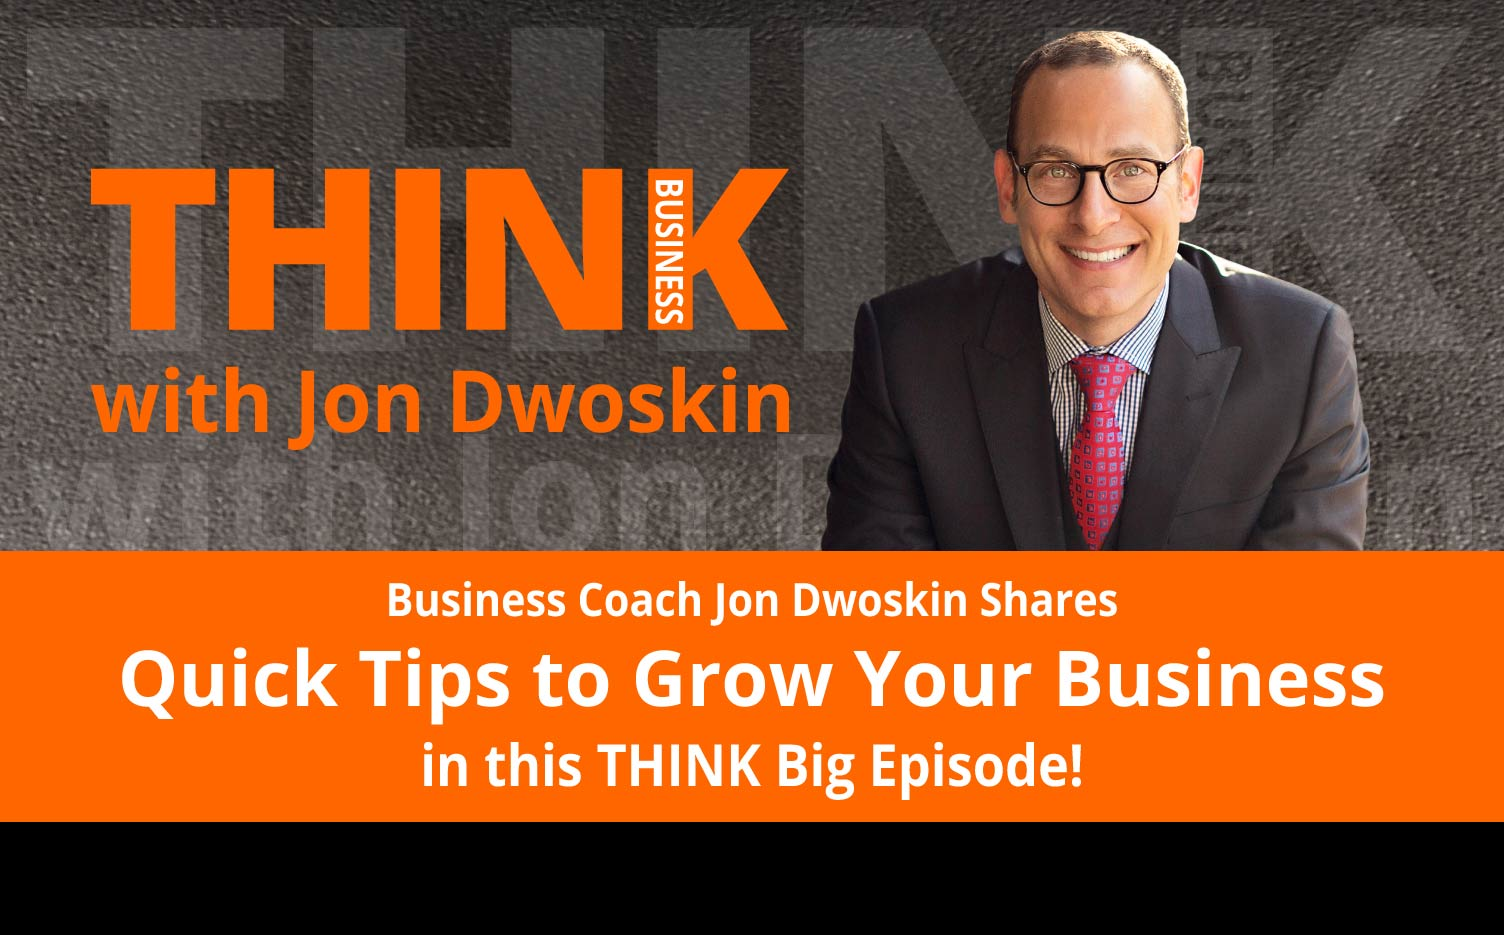 THINK Business Podcast: Today's Quick Tip: Map Out Your Three Year Narrative